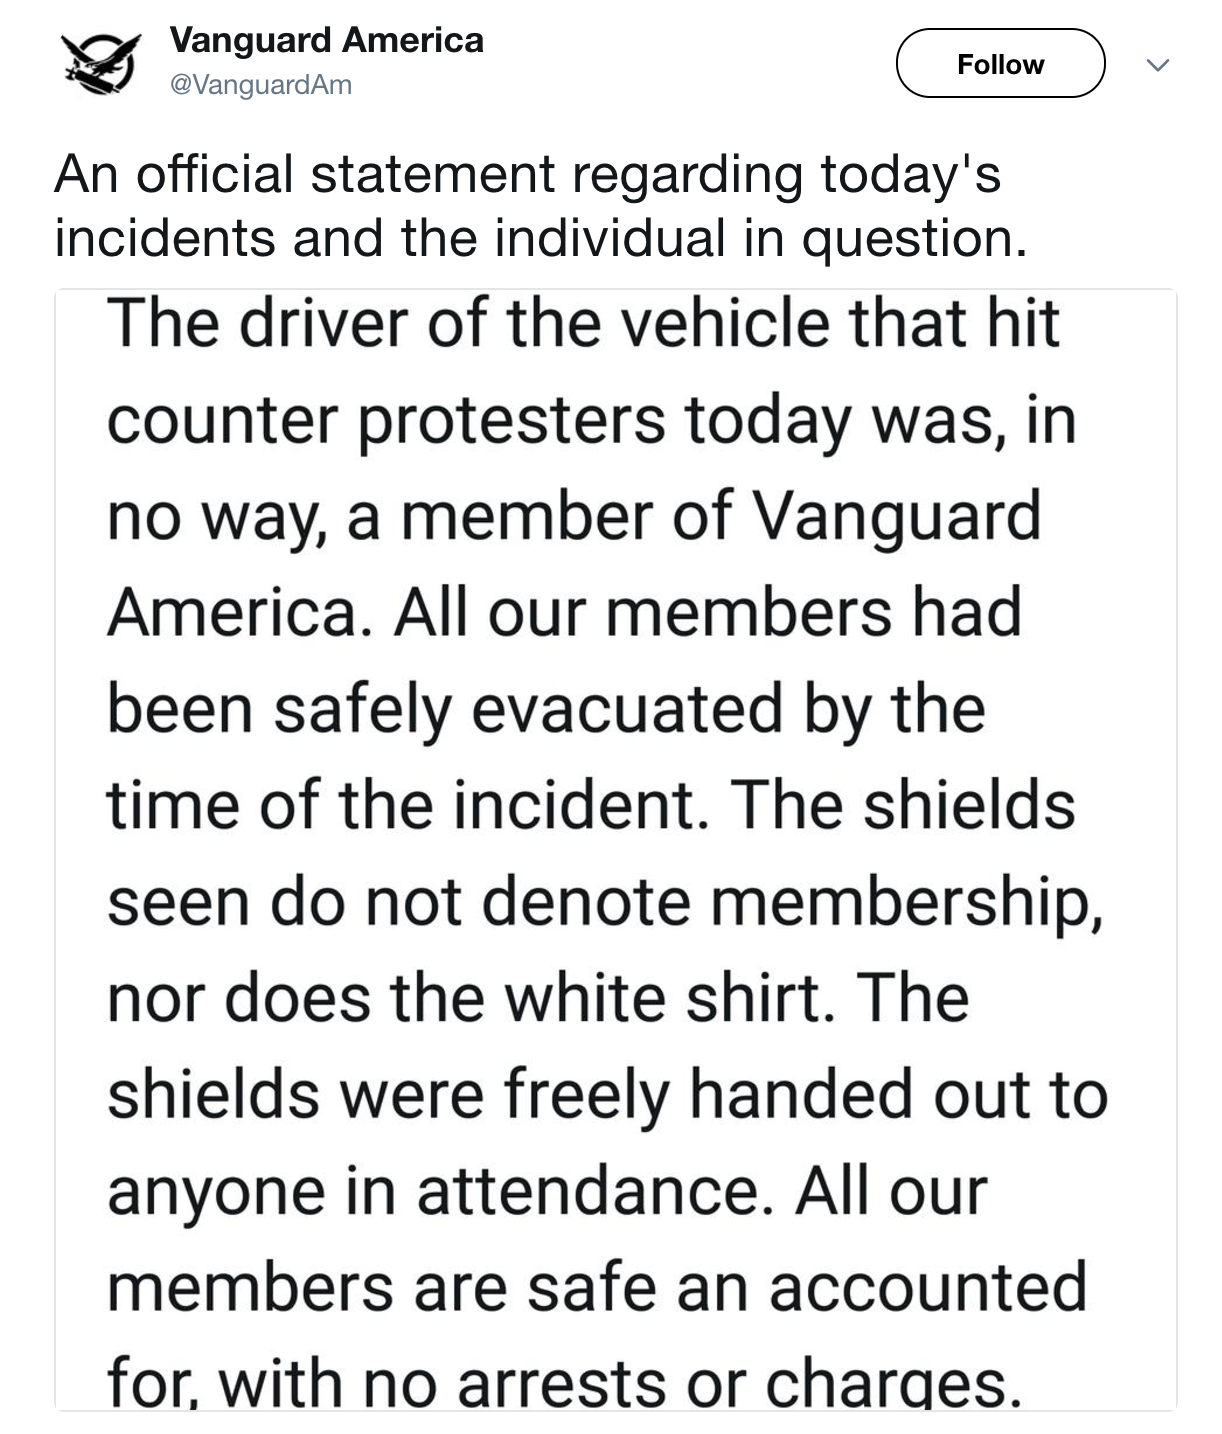 Vanguard America Whose Tagline Is Blood And Soil Is One Of A Number Of Alt Right Groups Emboldened Since The 2016 Election Pic Twitter Com Hqvh8x06tq